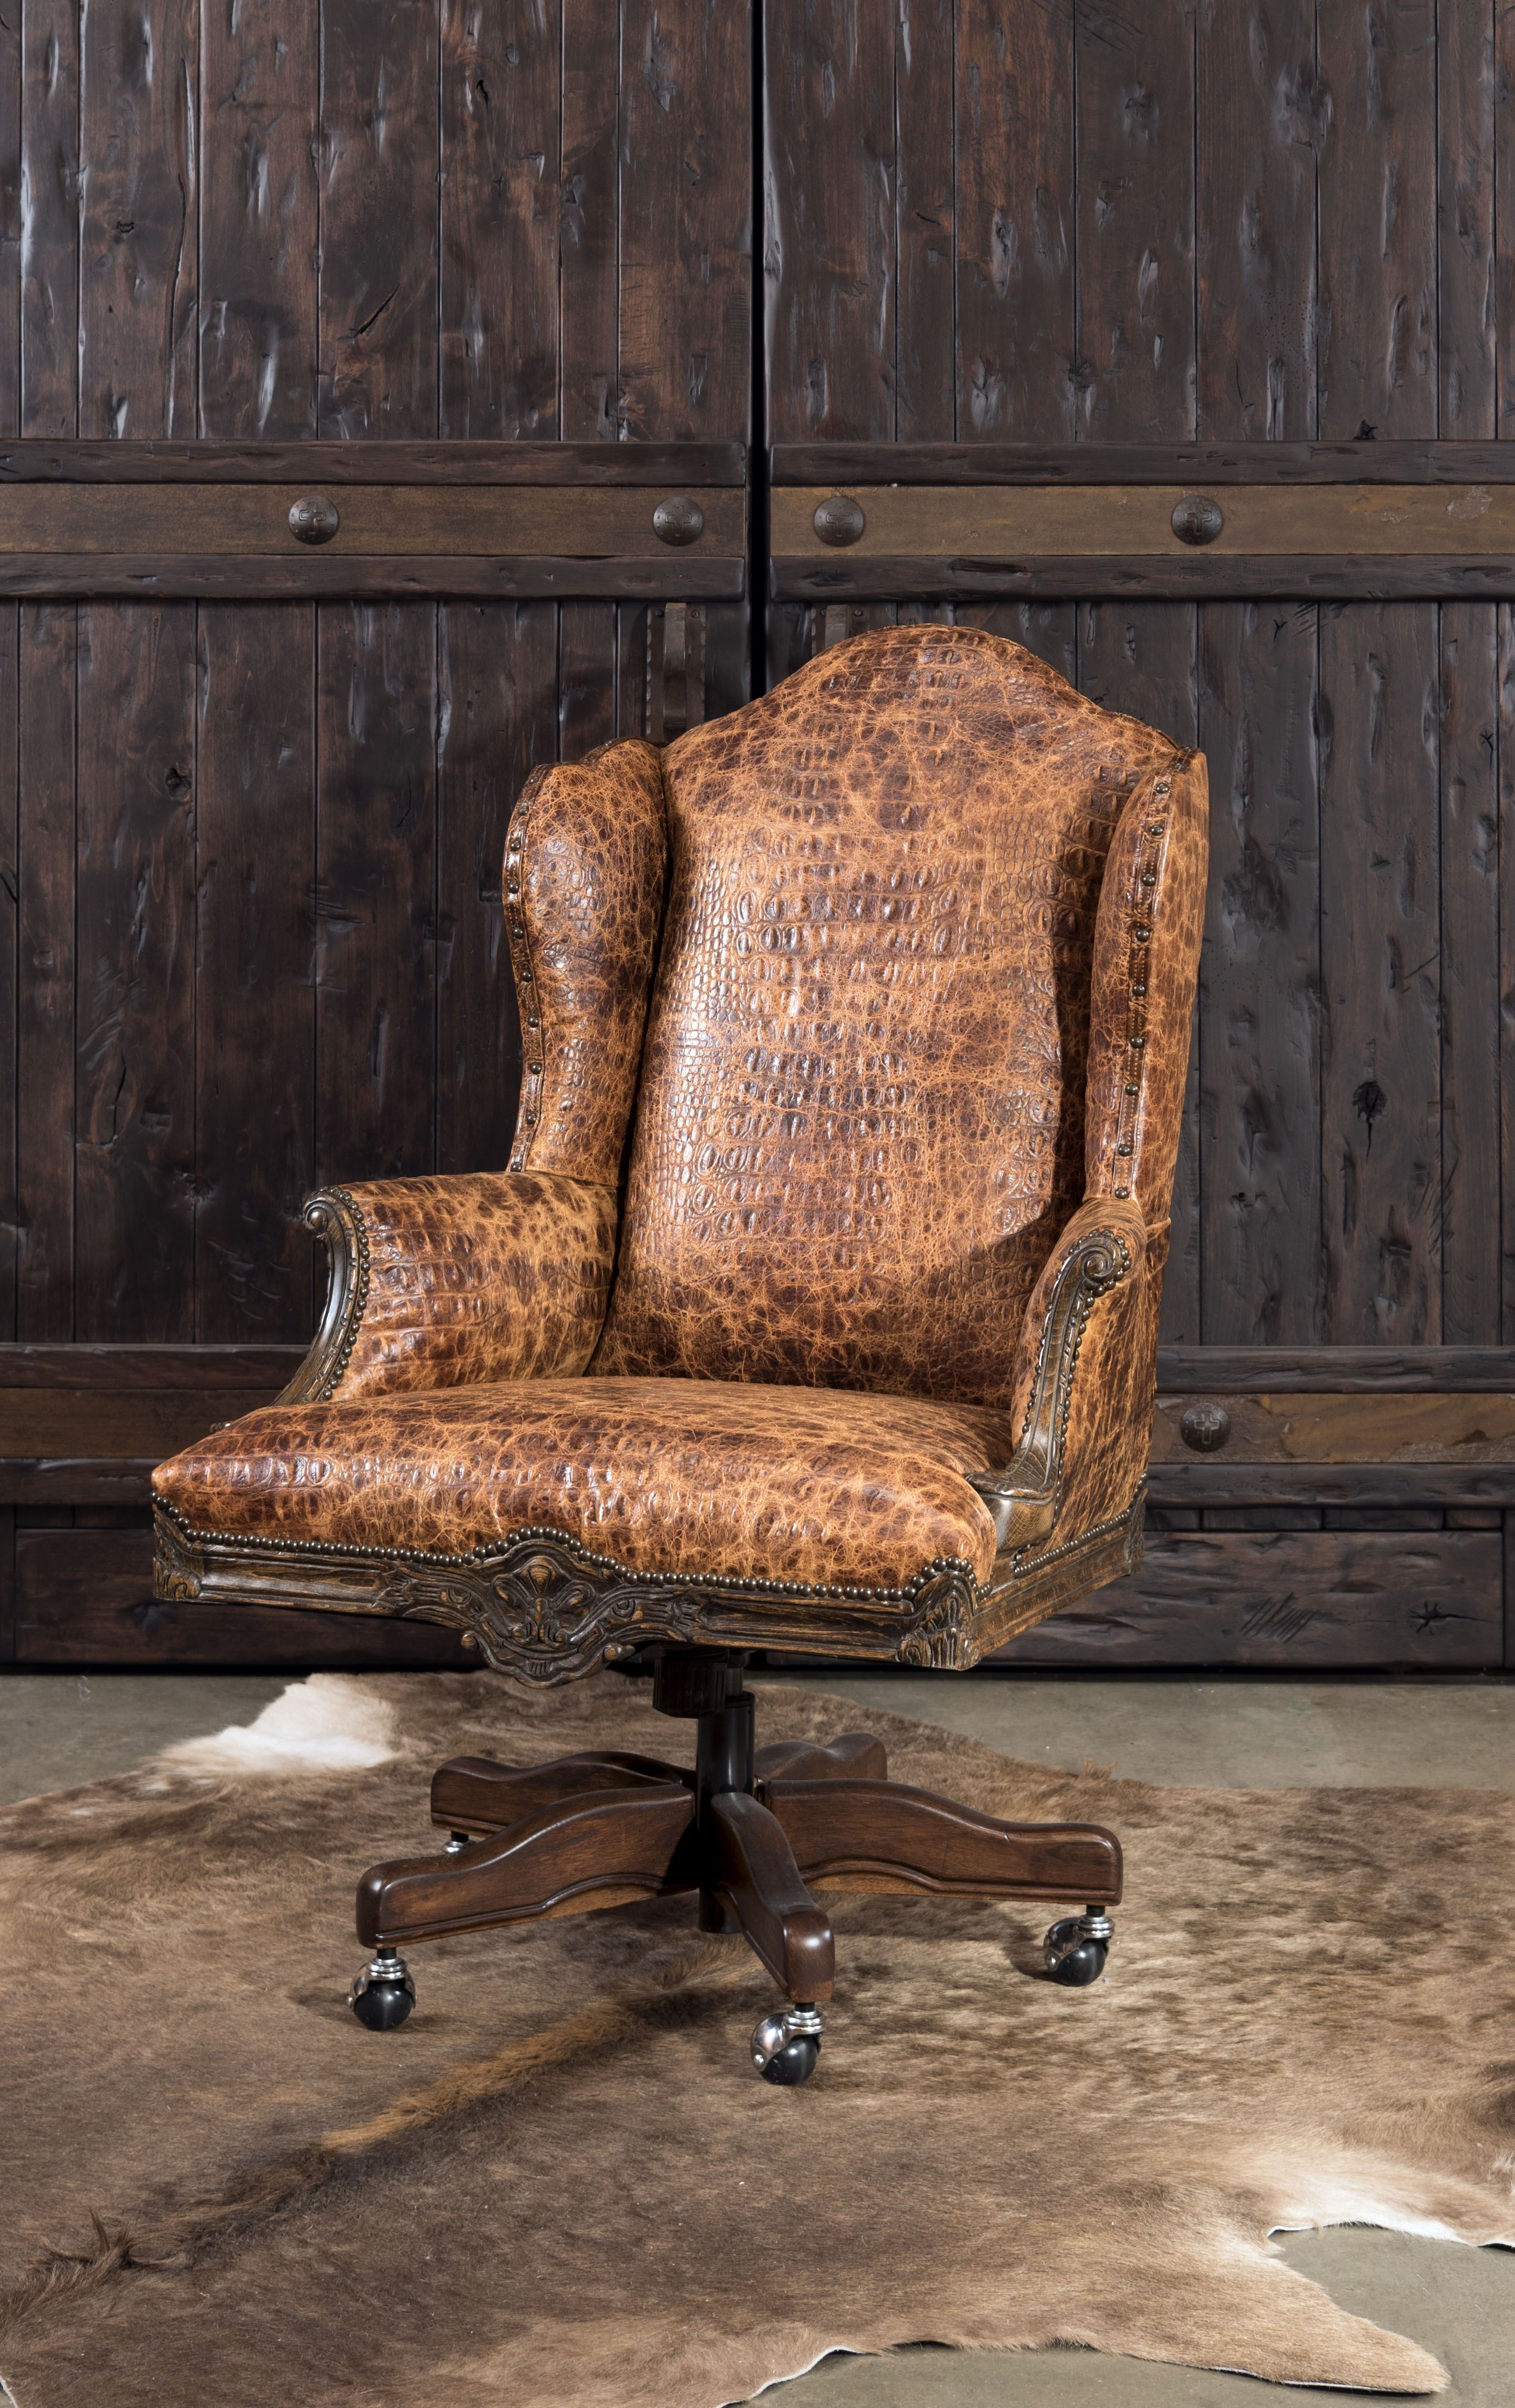 Pin On Classic Rustic Ranch Executive Desk Chairs By Adobe Interiors